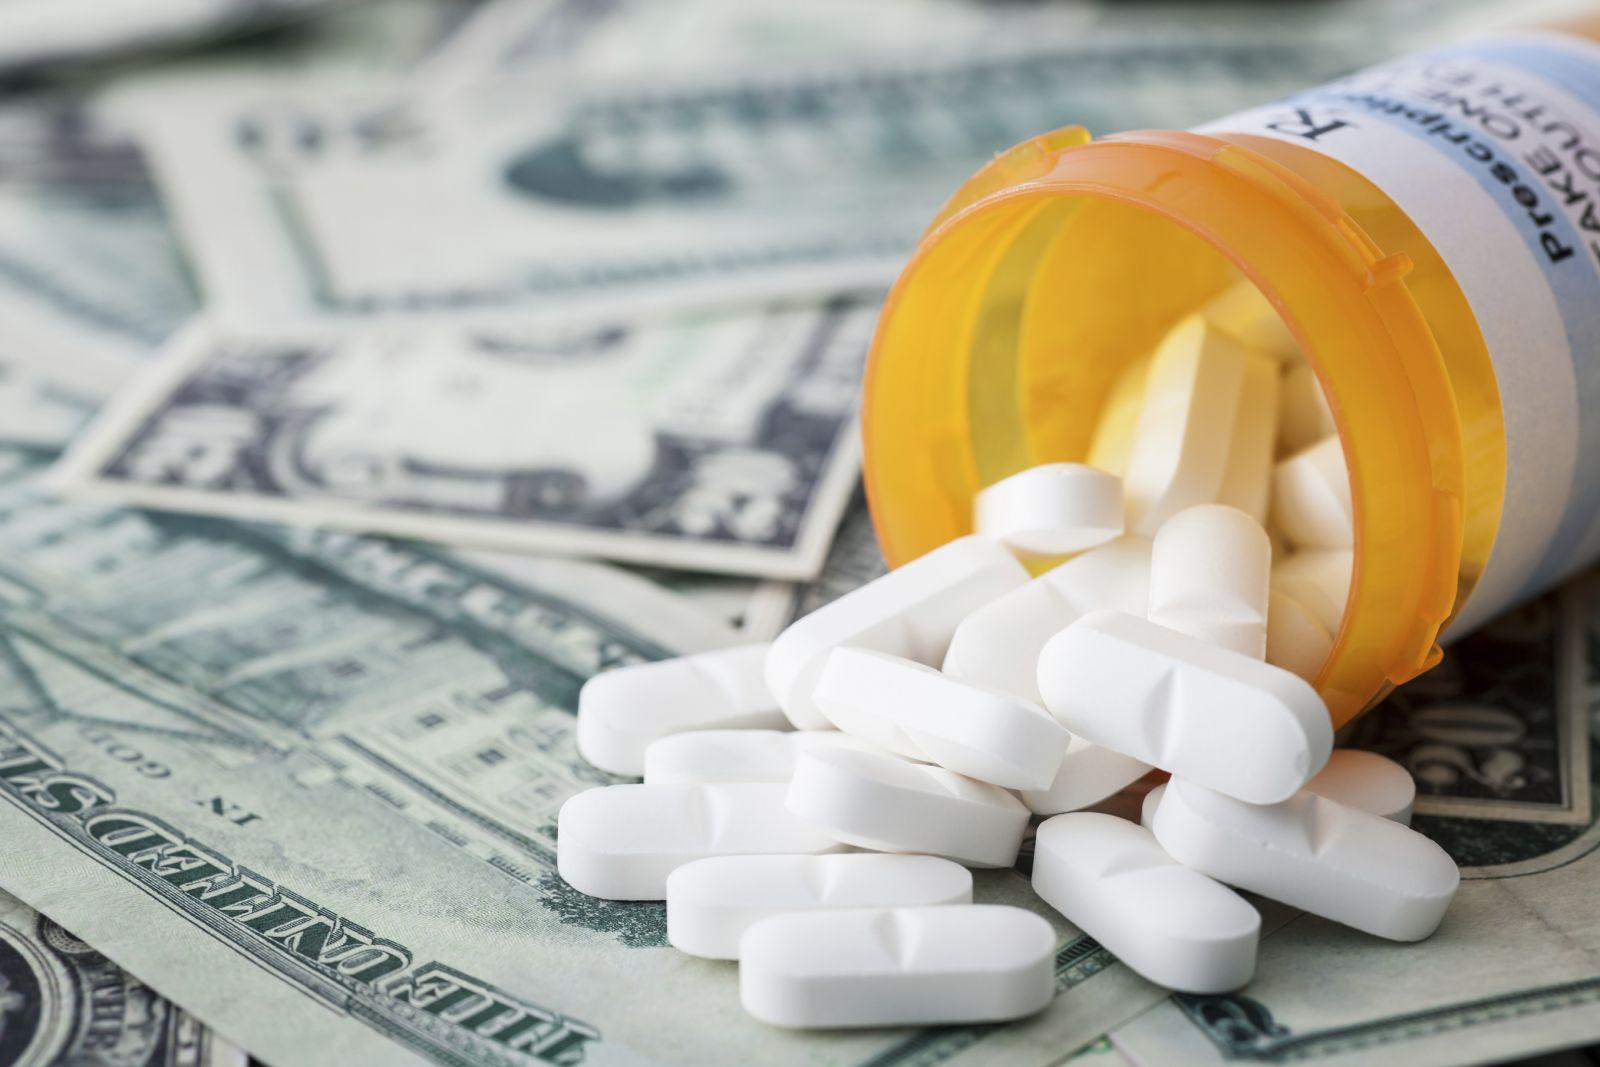 How Can I Pay For Diabetes Medications And Care?